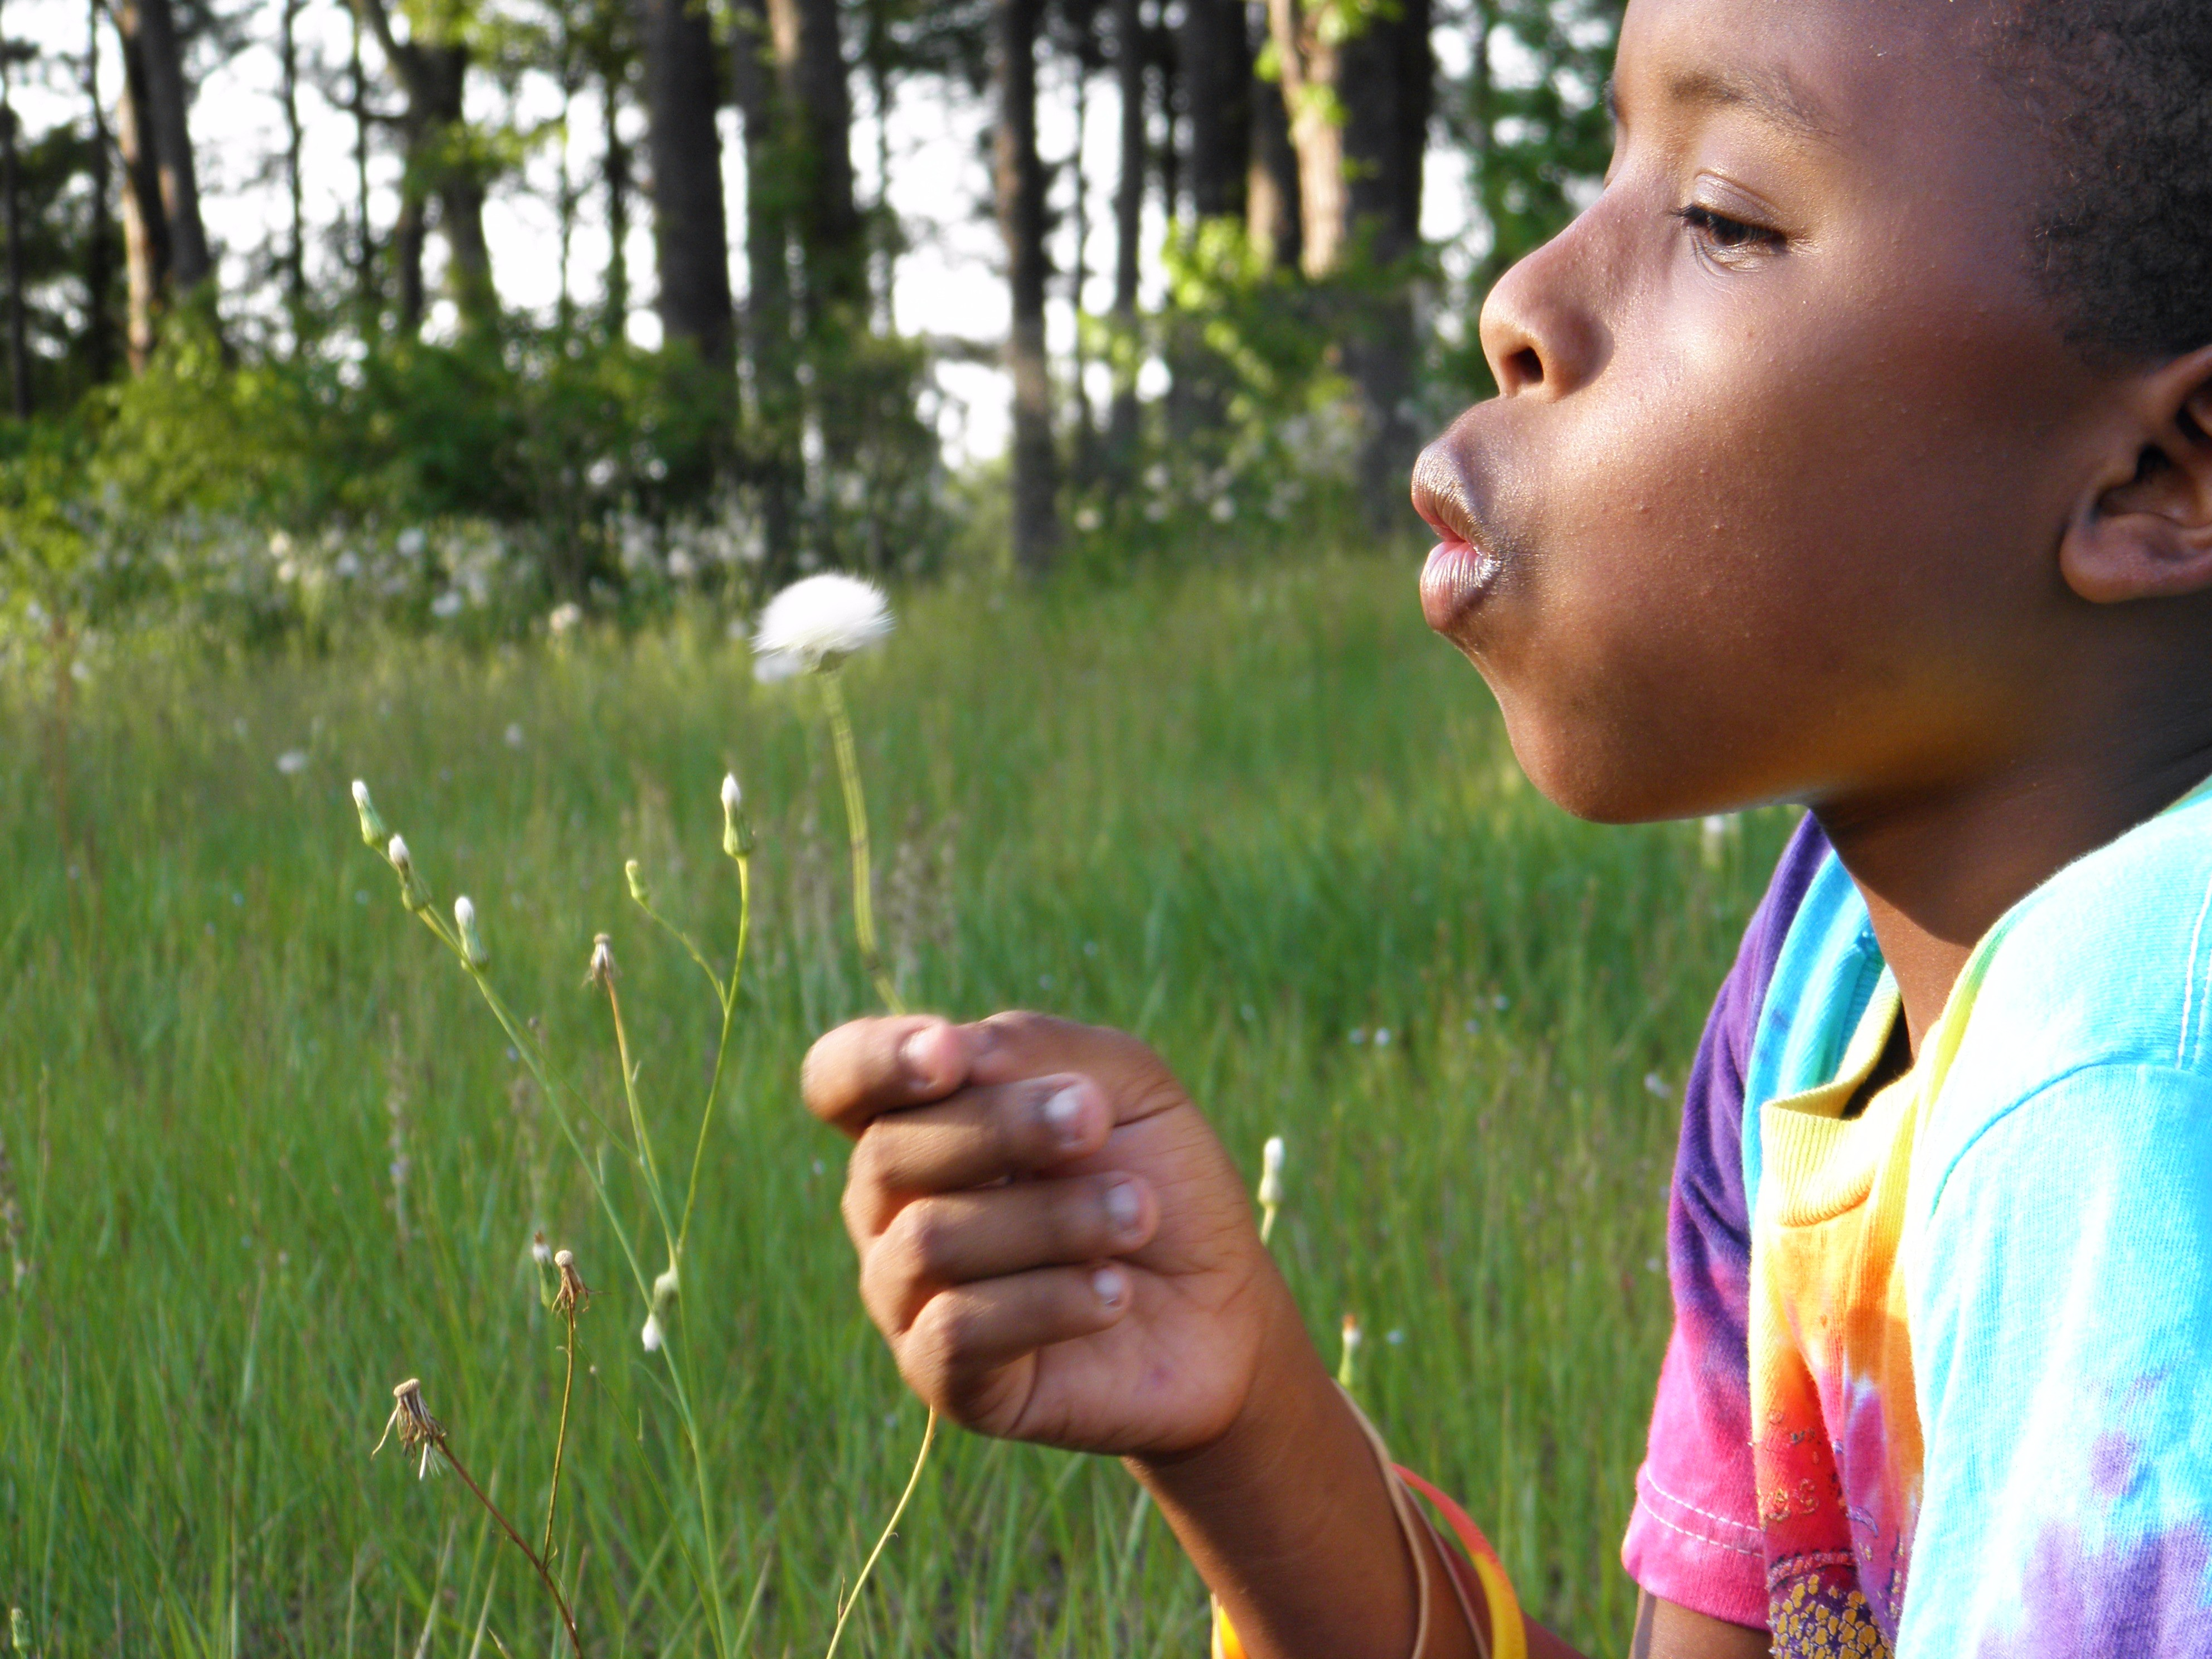 Scientists can now detect 17 diseases by smell